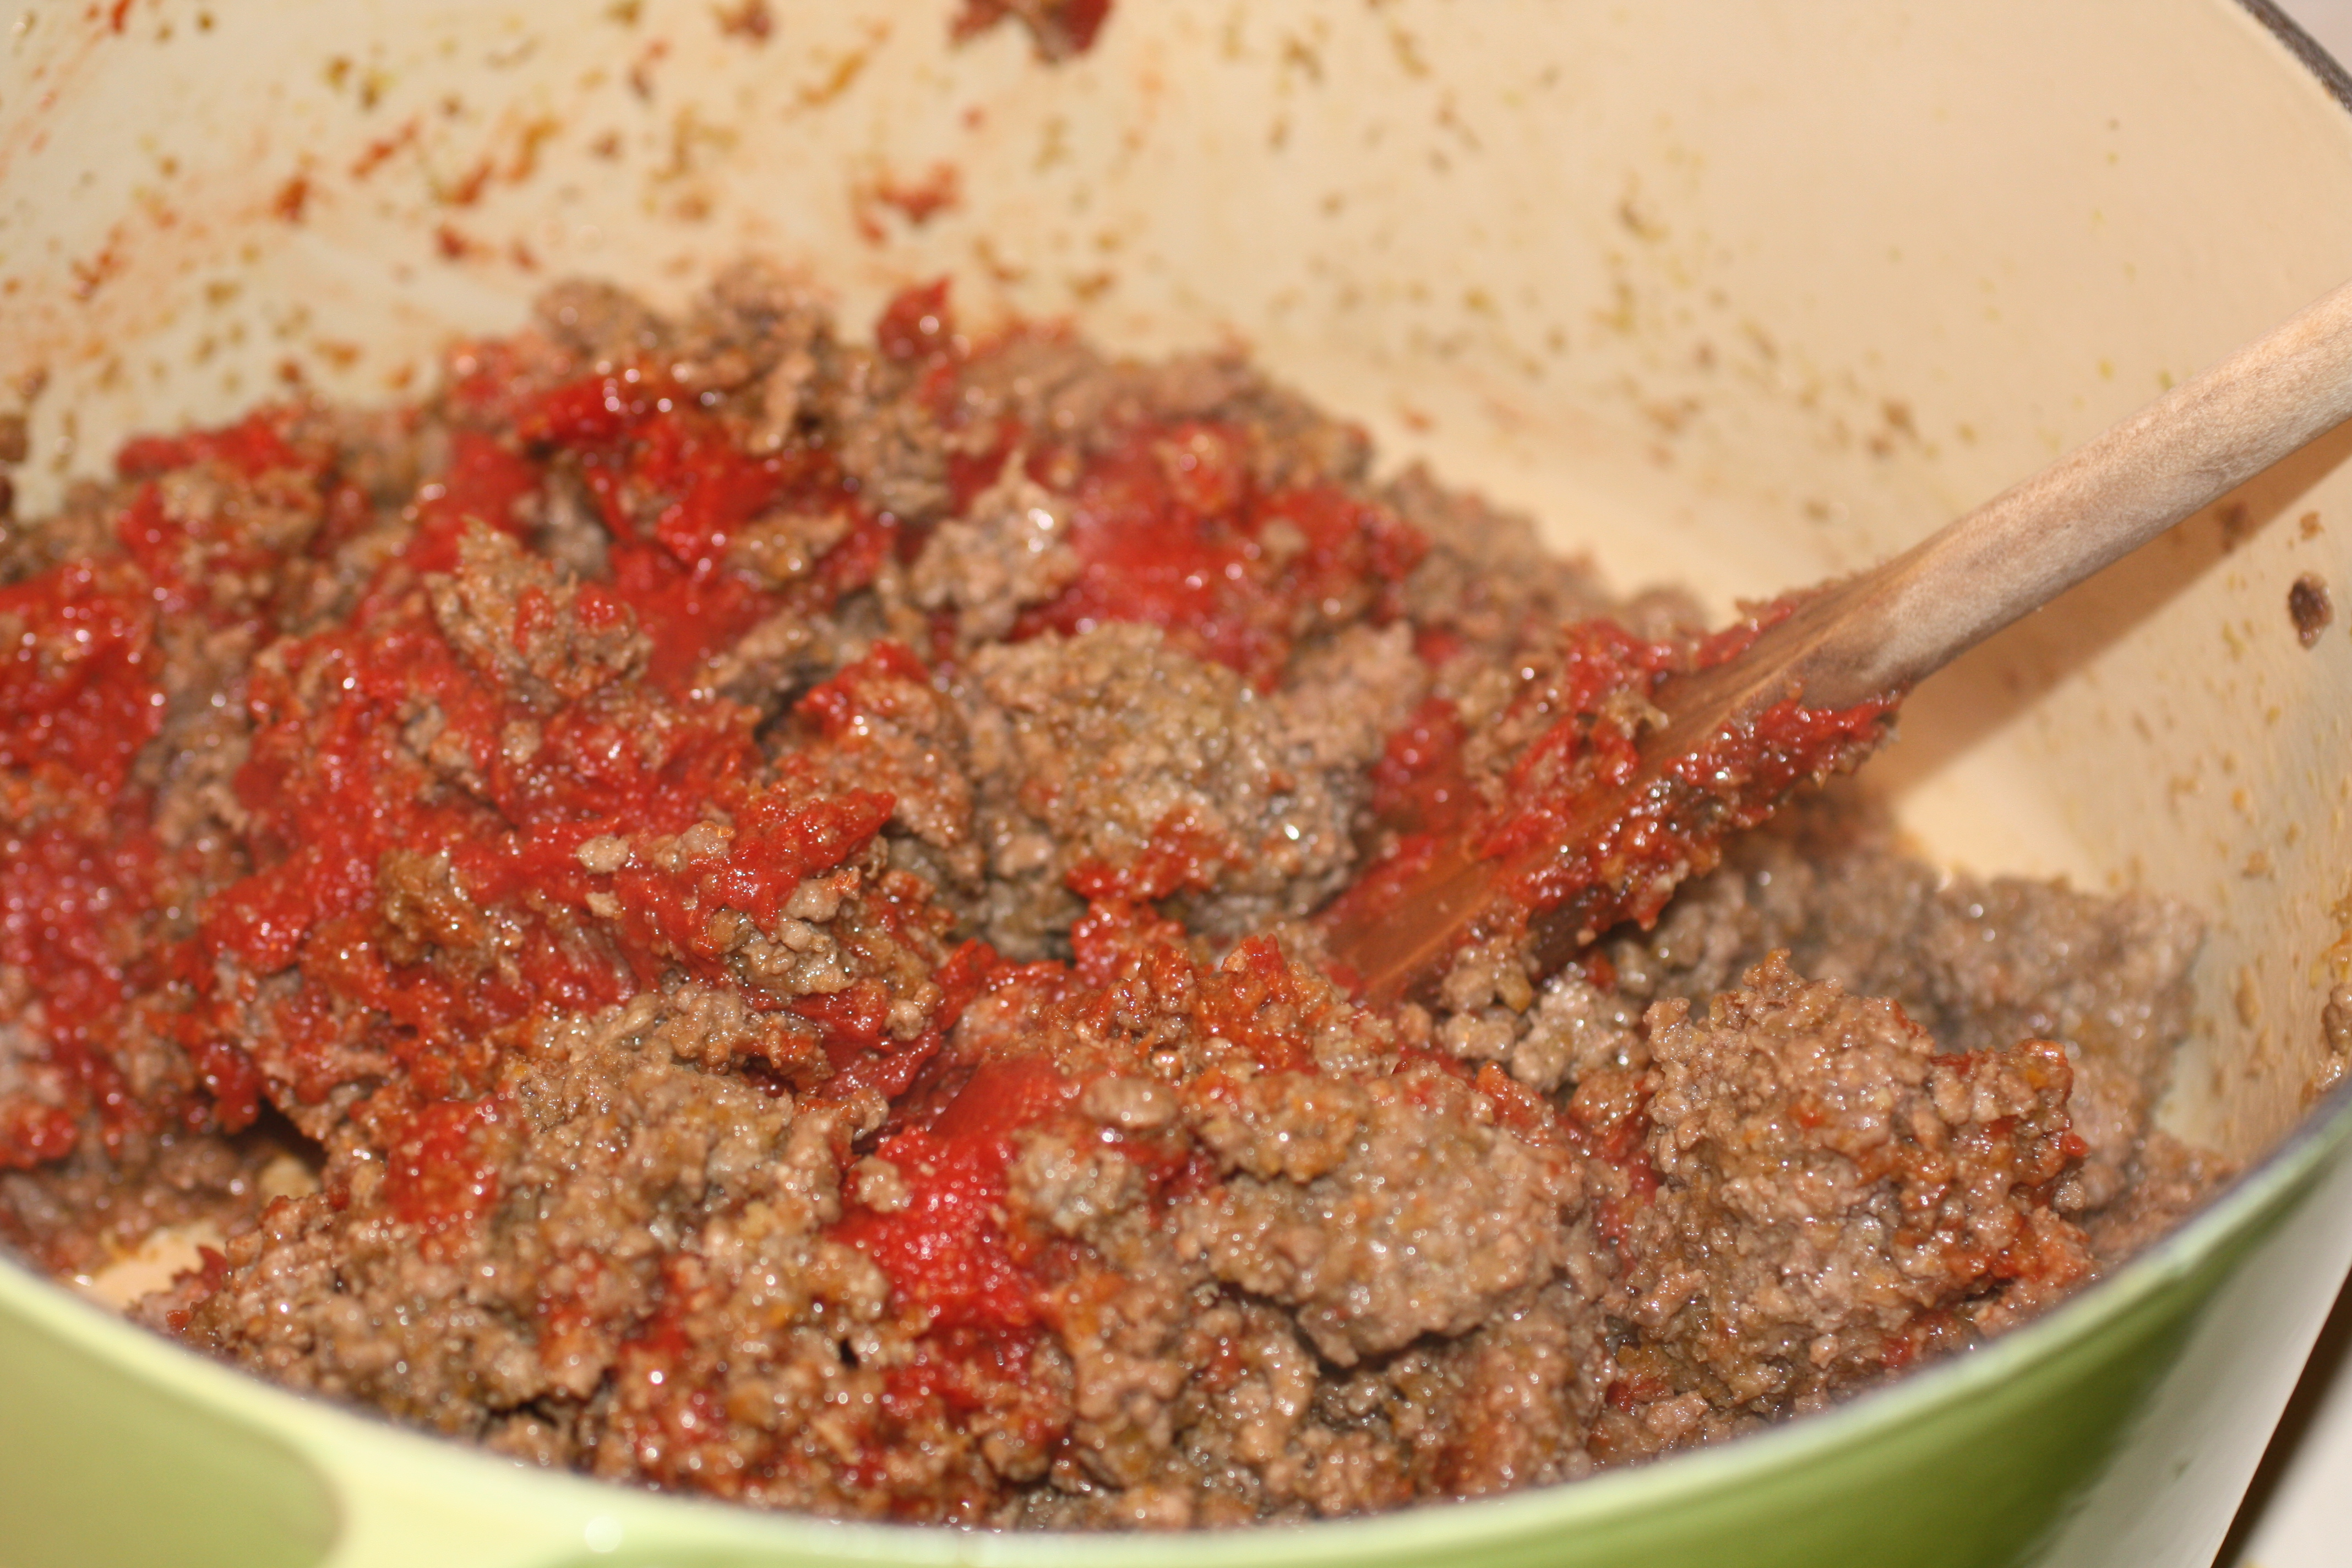 Browning the Tomato Paste